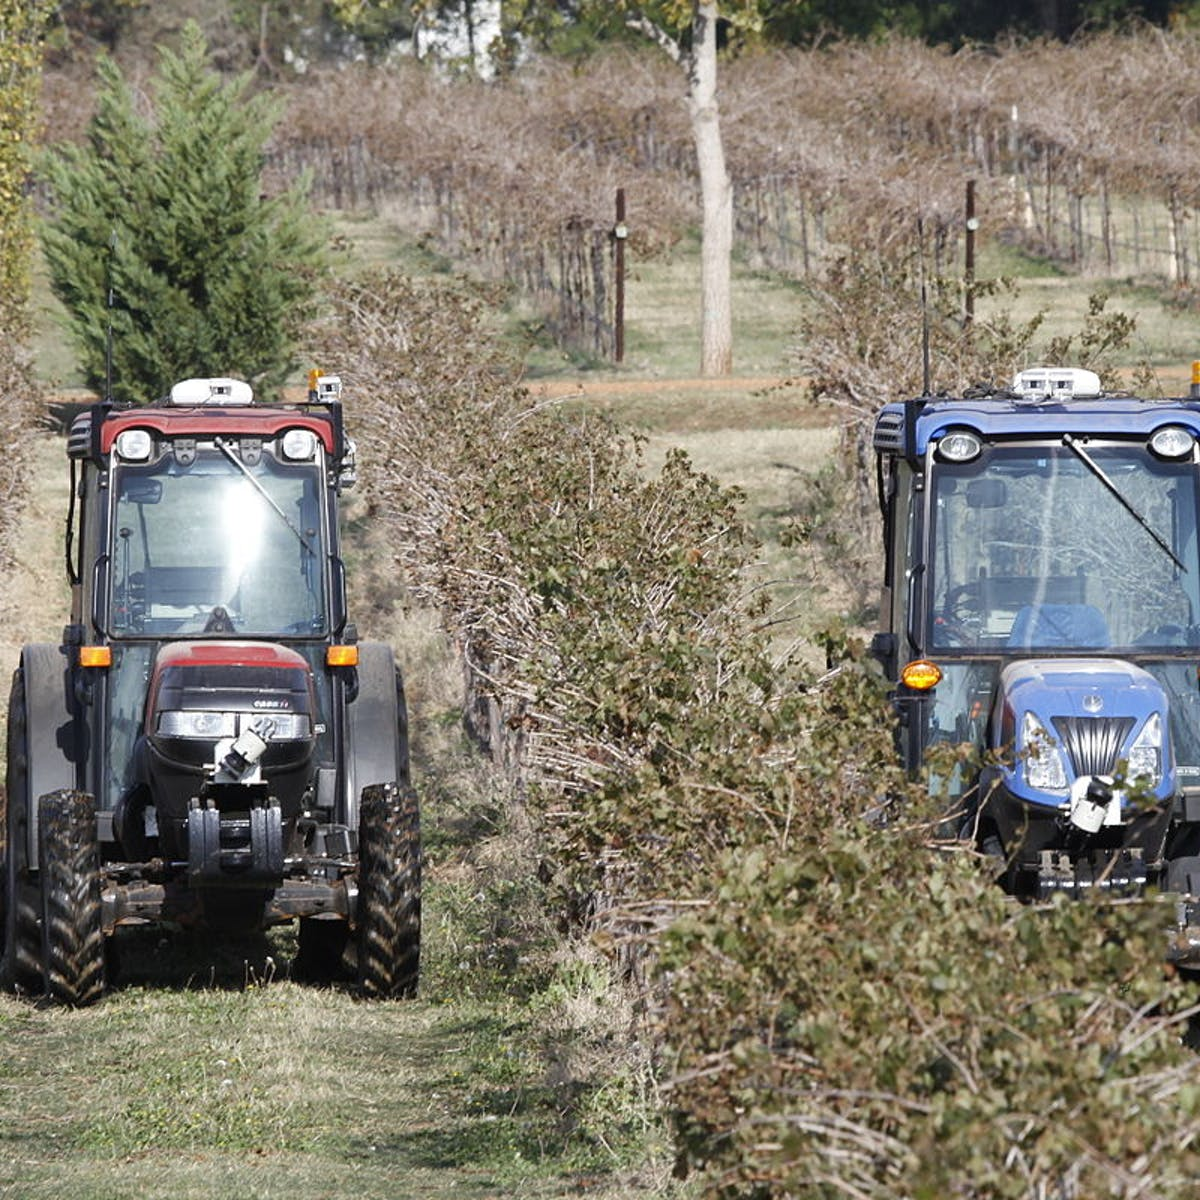 High-tech agriculture: farmers risk being 'locked in' to